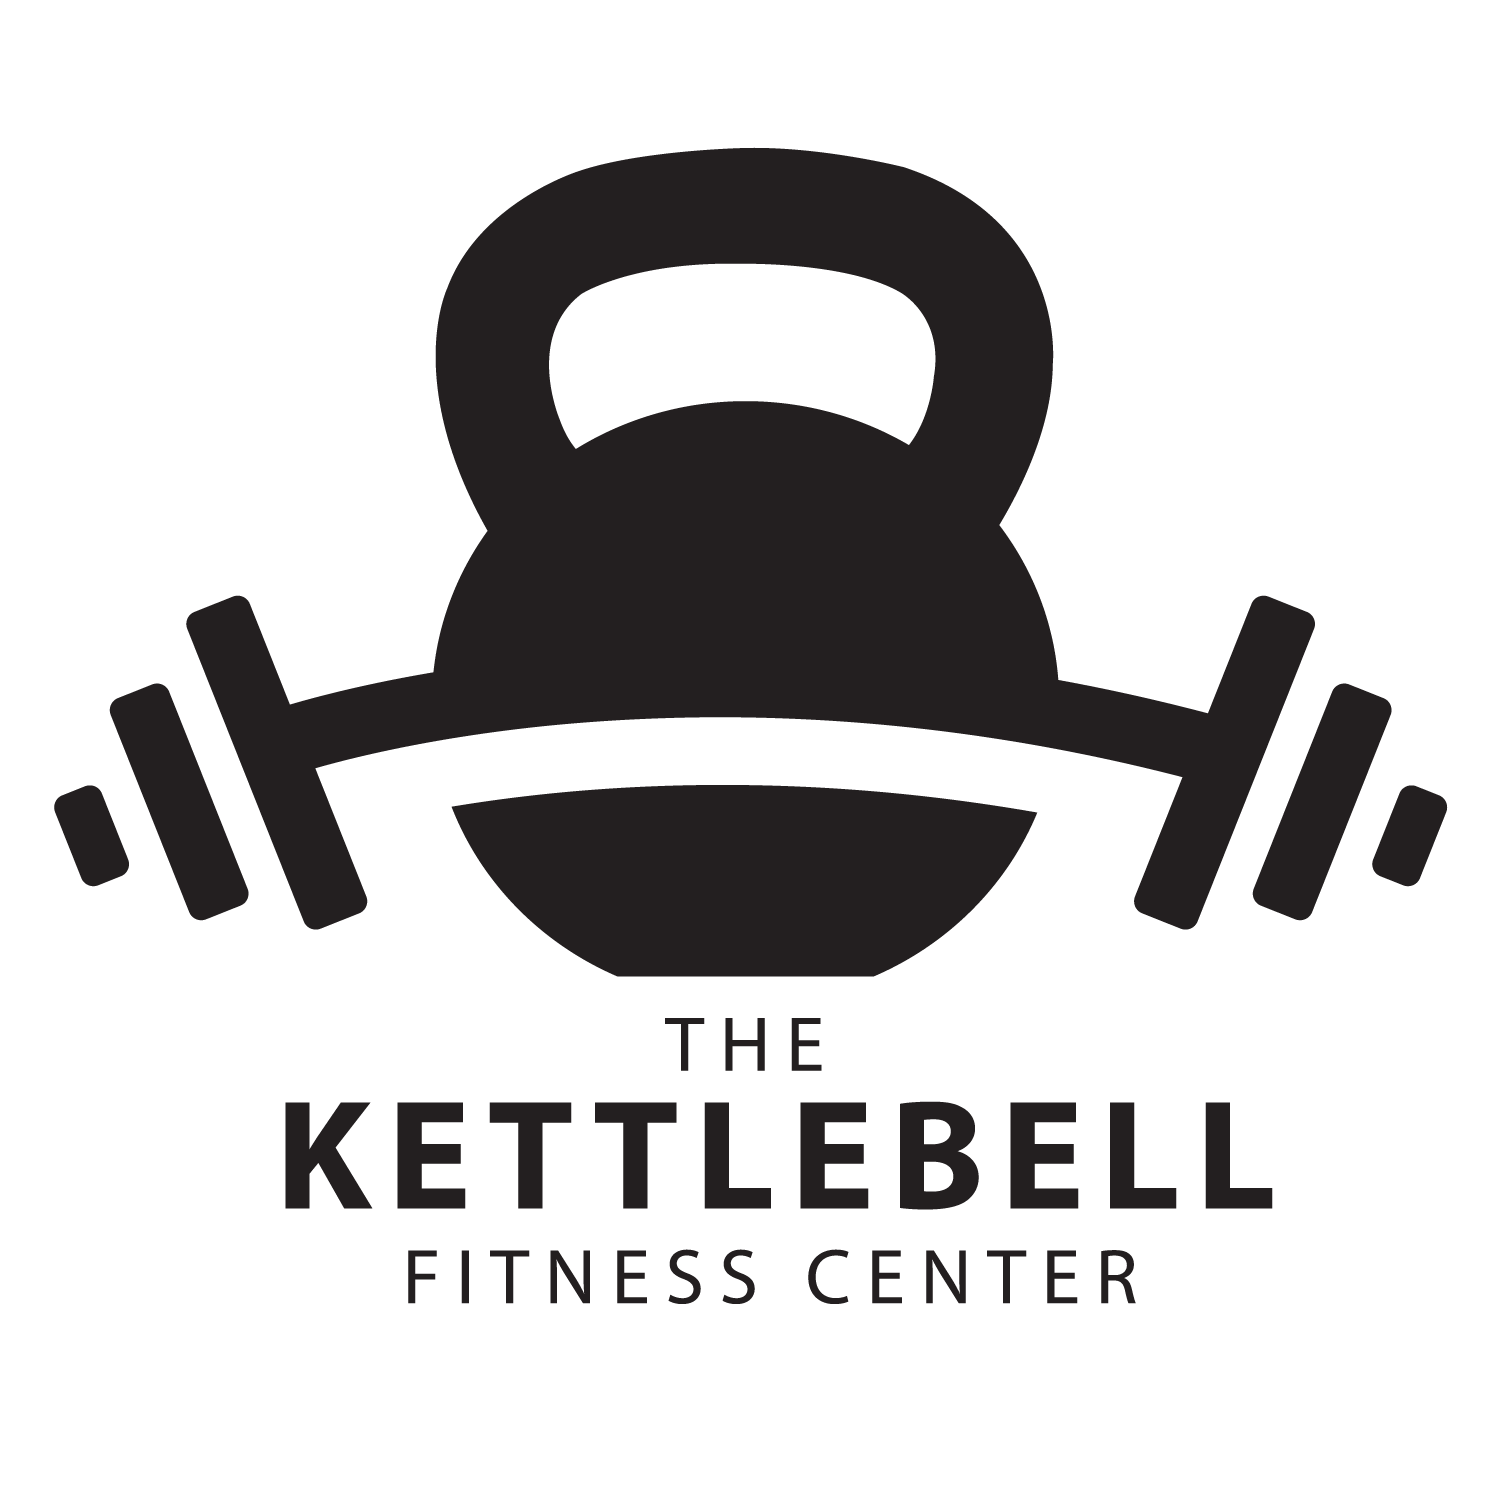 The Kettlebell Fitness Center